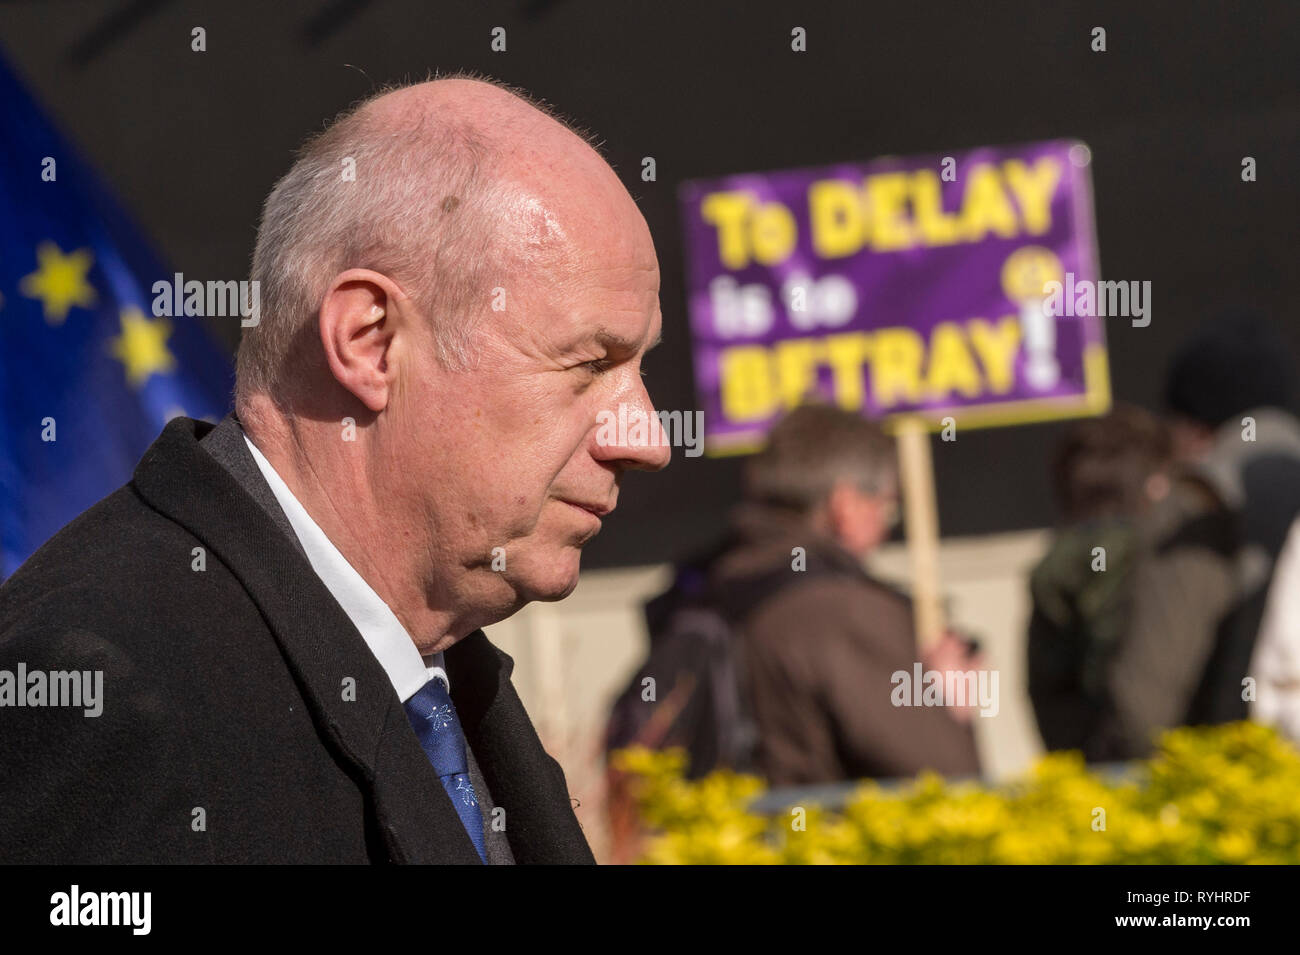 London, UK. 14th Mar, 2019. Damian Green, MP for Ashford, takes part in an interview in Westminster. MPs are due to vote on whether to delay the departure date for Brexit later today. Credit: Stephen Chung/Alamy Live News - Stock Image